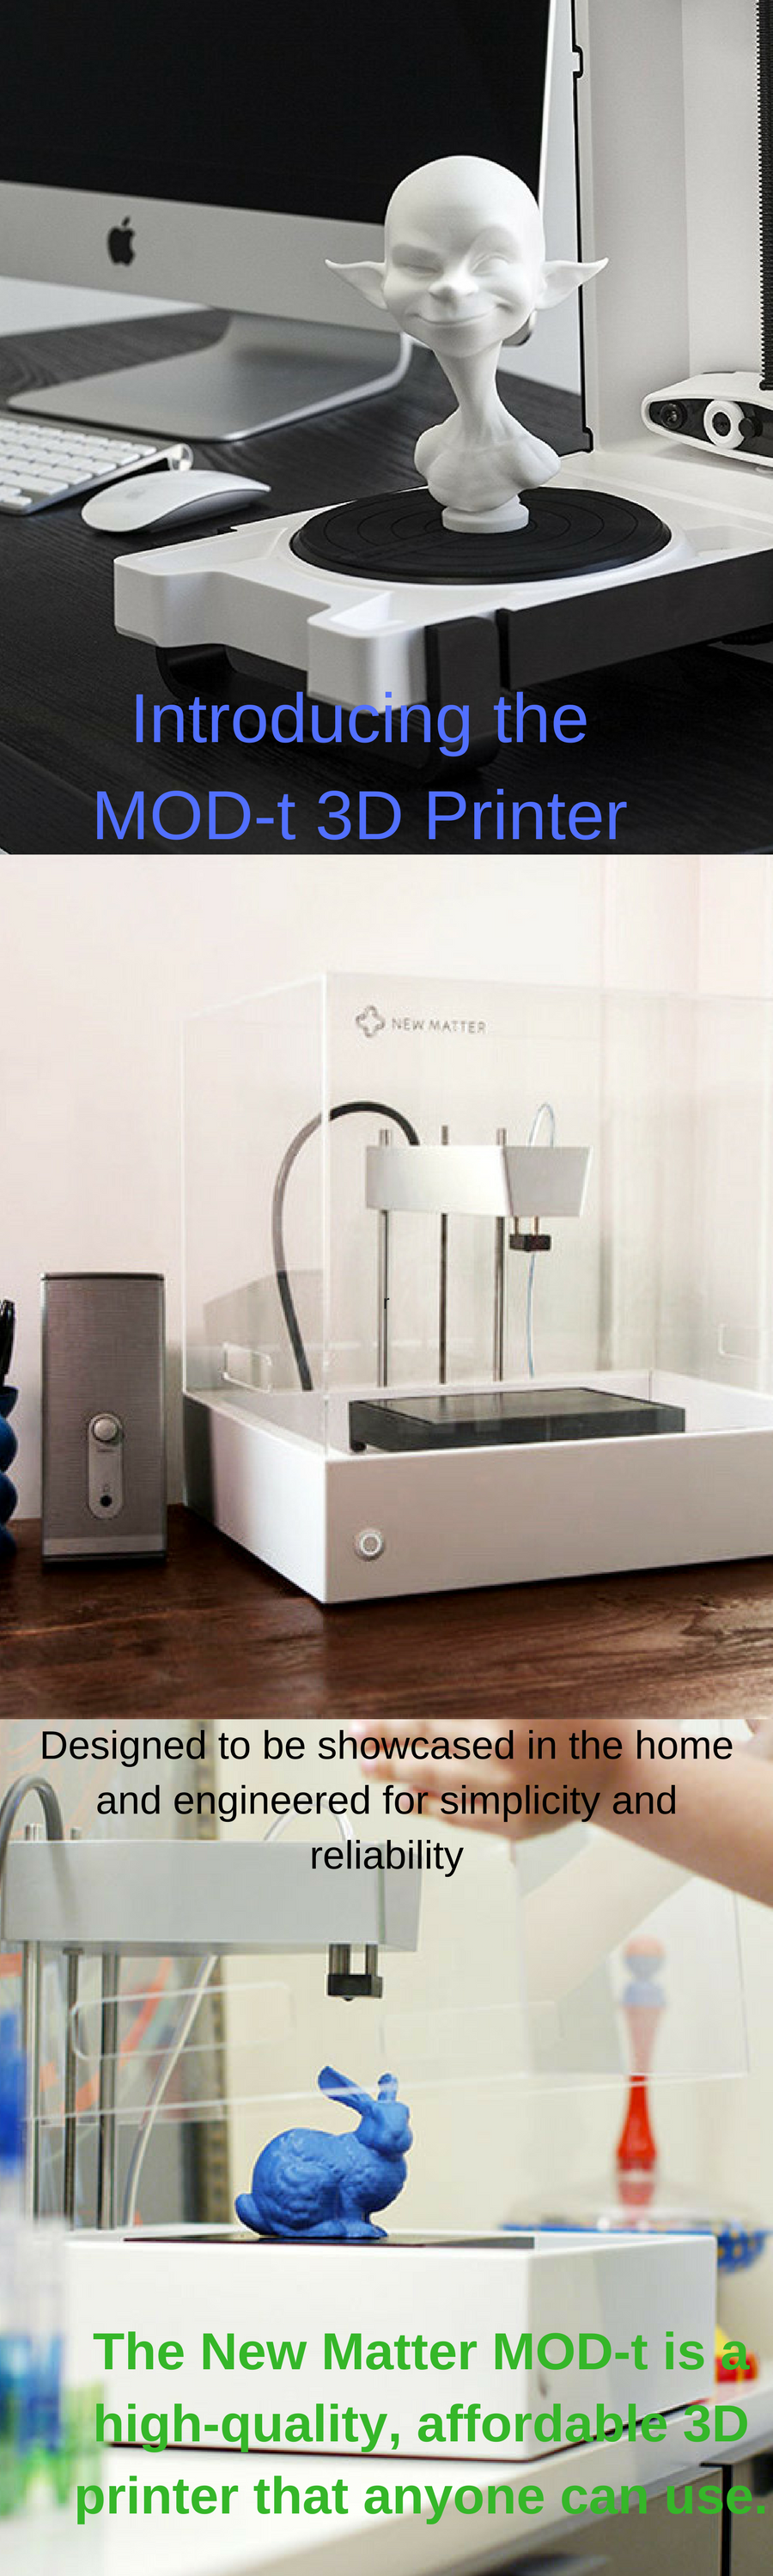 Just like the MOD-t, the Matter and Form 3D scanner is a highly